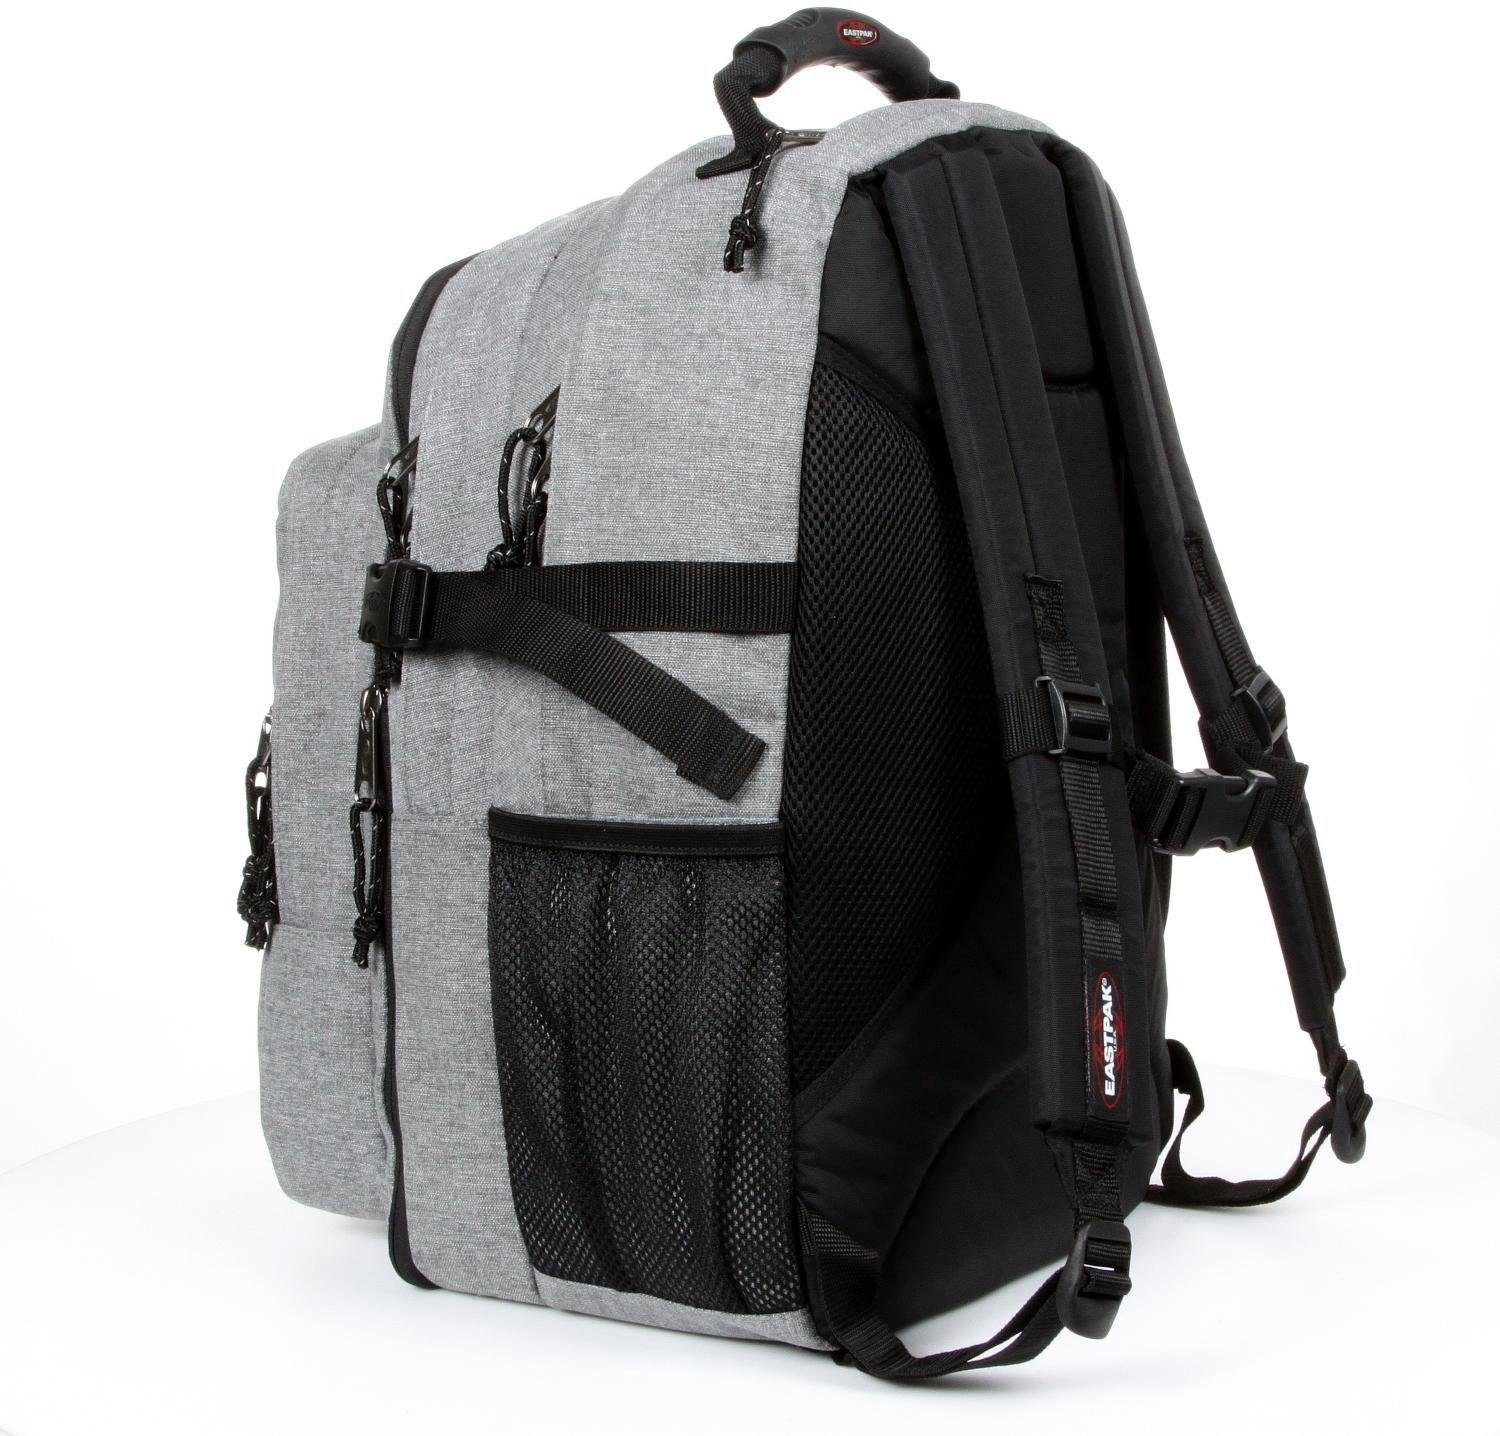 Rugzak Eastpak Eastpak Rugzak Met Laptopvak Tutor Sunday Grey Online